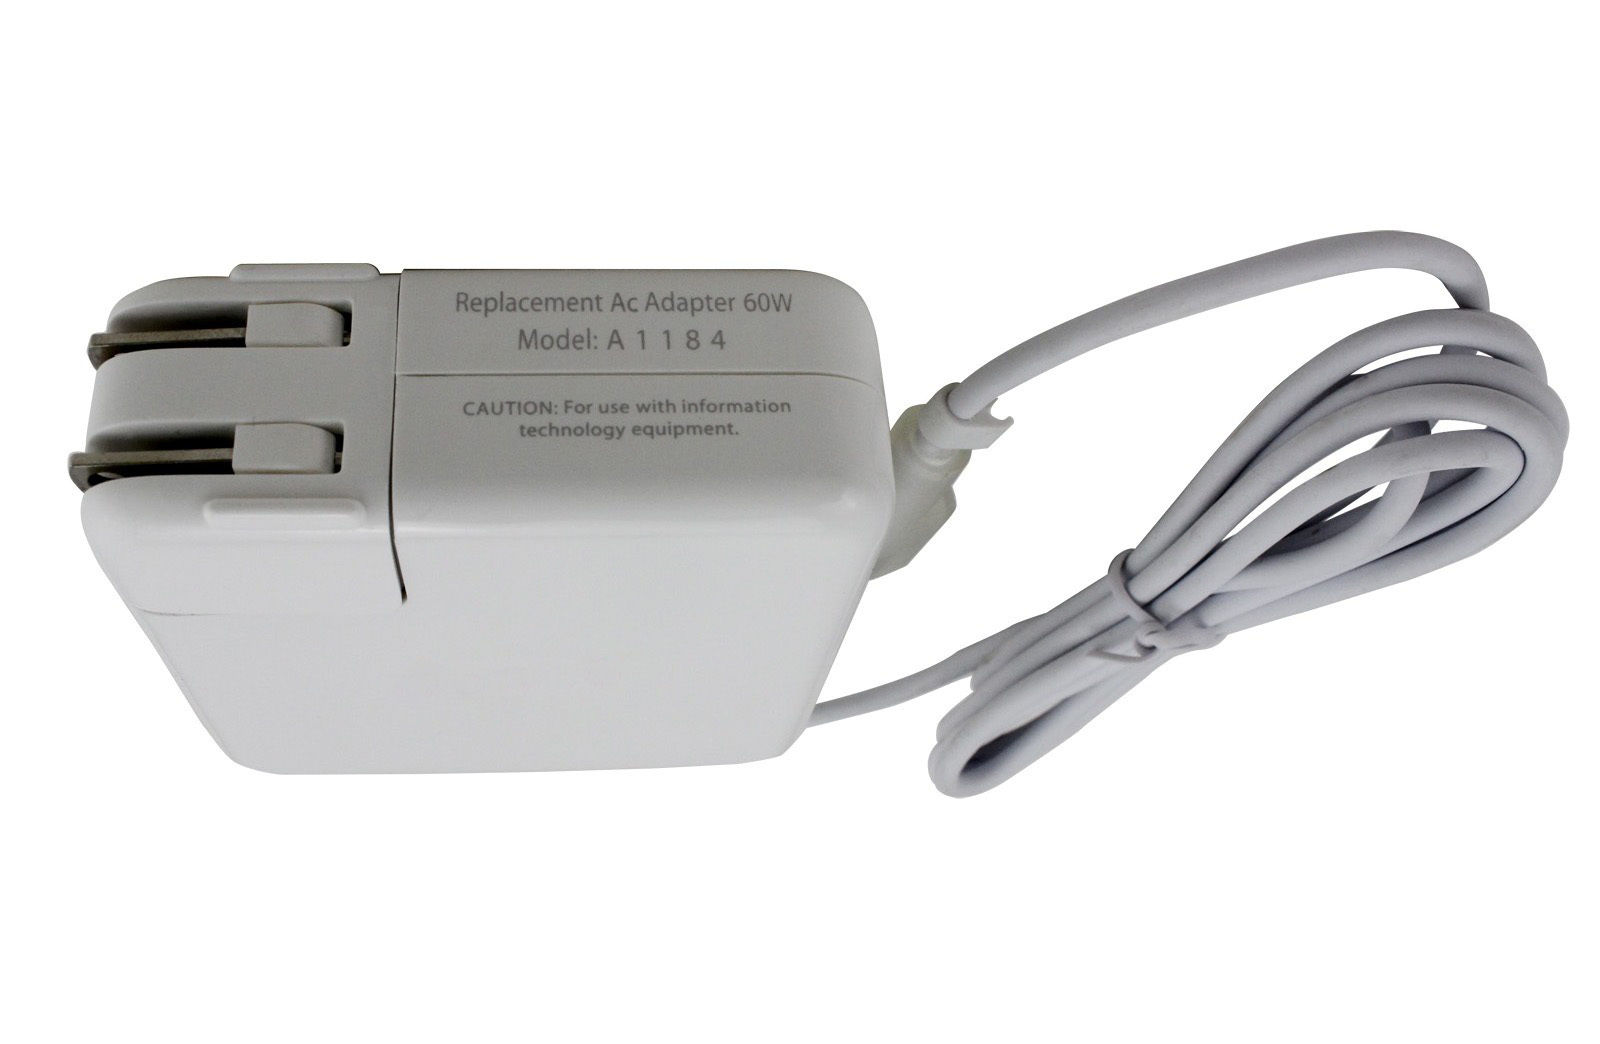 Sạc Macbook zin 60W 16.5V -3.65A MAGSAFE 1